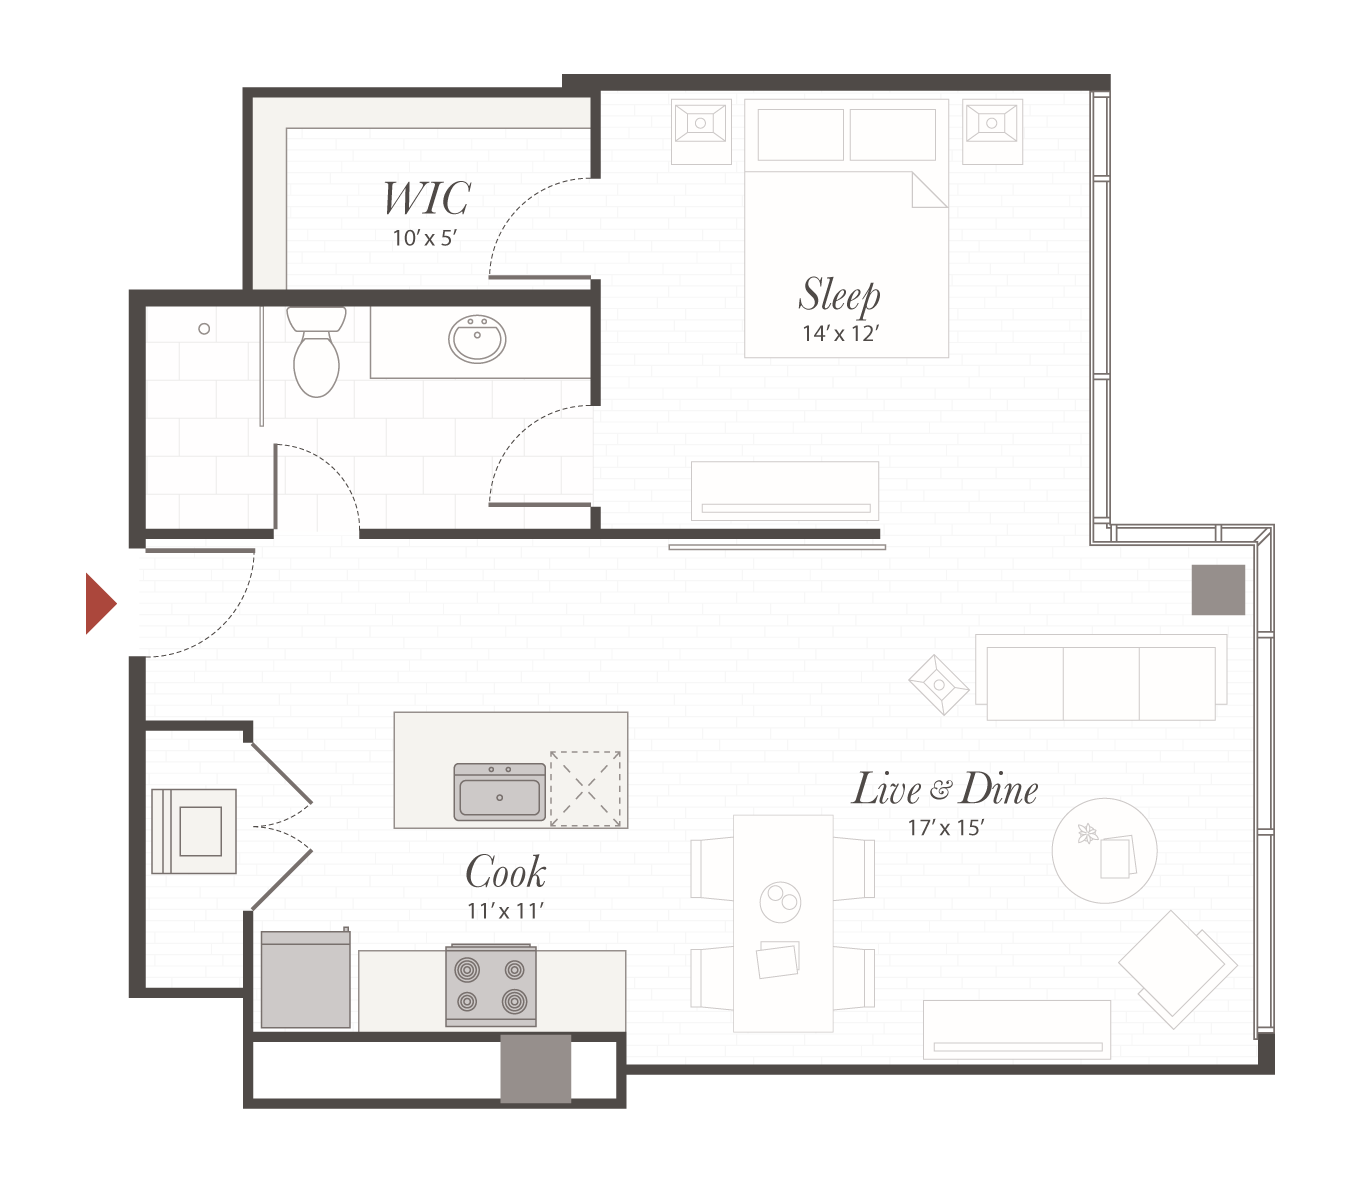 P5 Floor Plan 1 Bedroom Luxury Apartment Cincinnati Oh